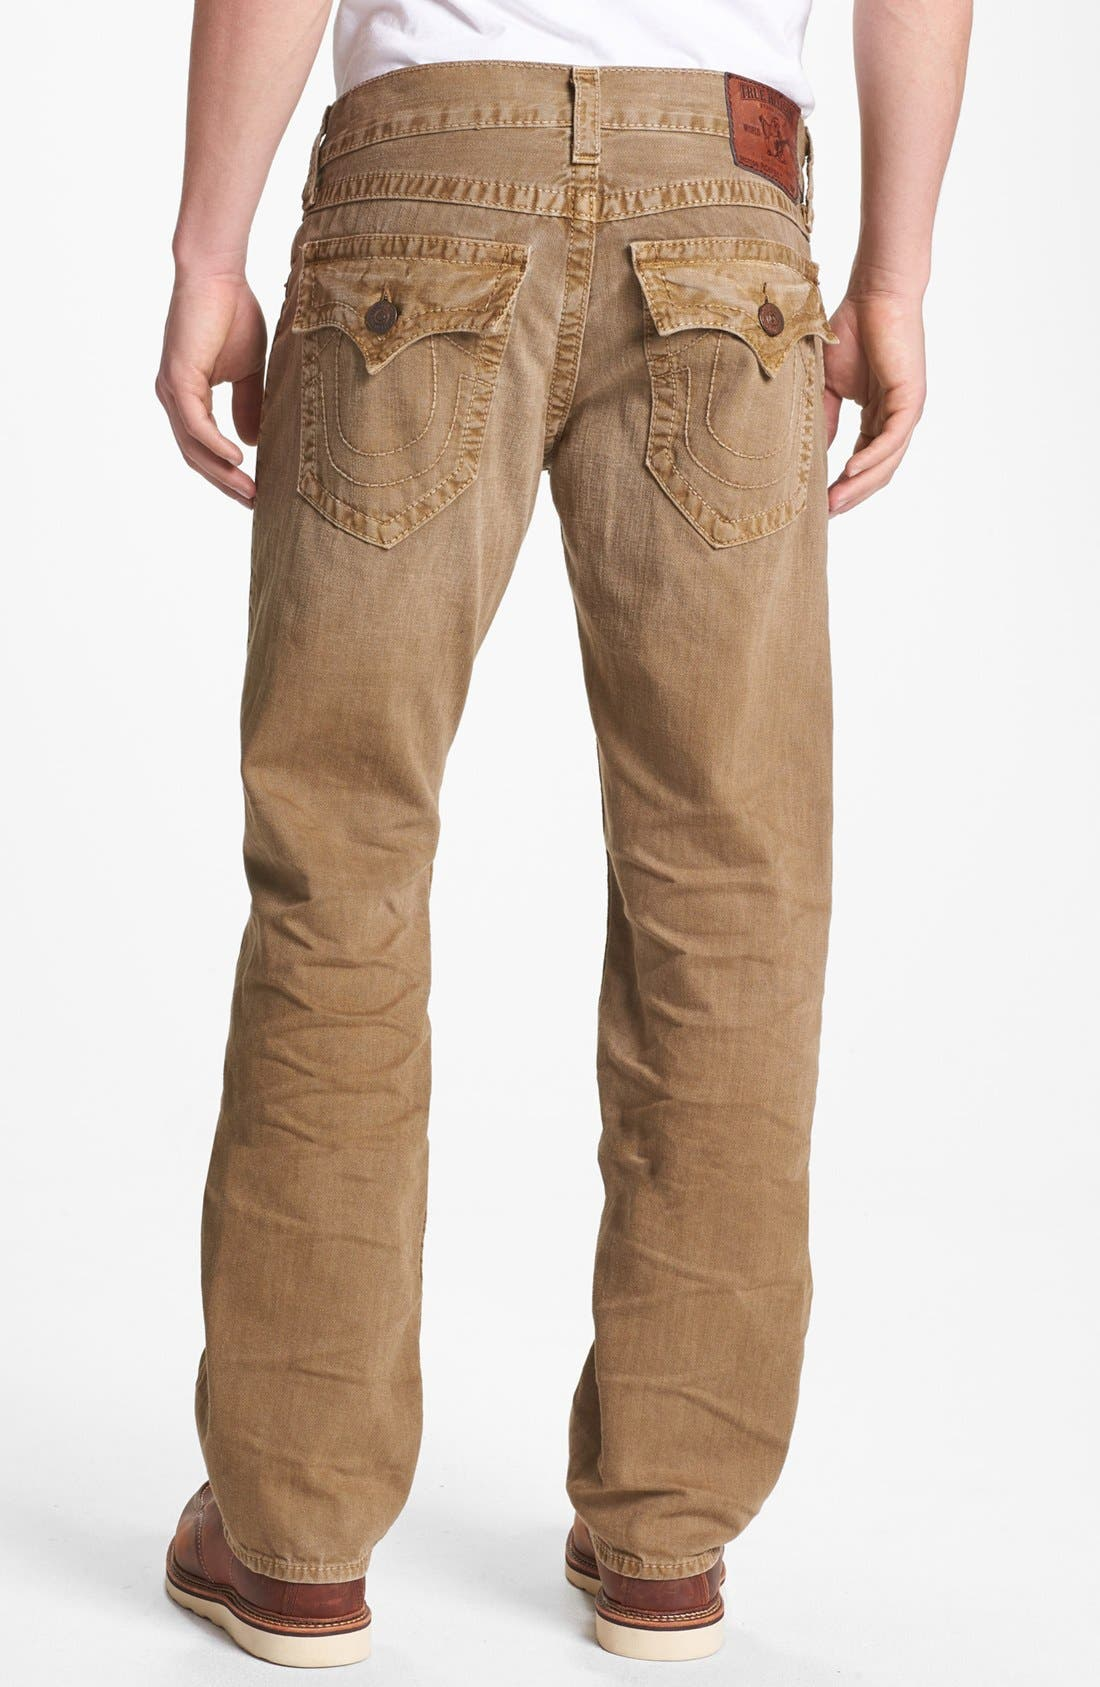 Alternate Image 1 Selected - True Religion Brand Jeans 'Ricky' Straight Leg Jeans (Assd Desert Sand)